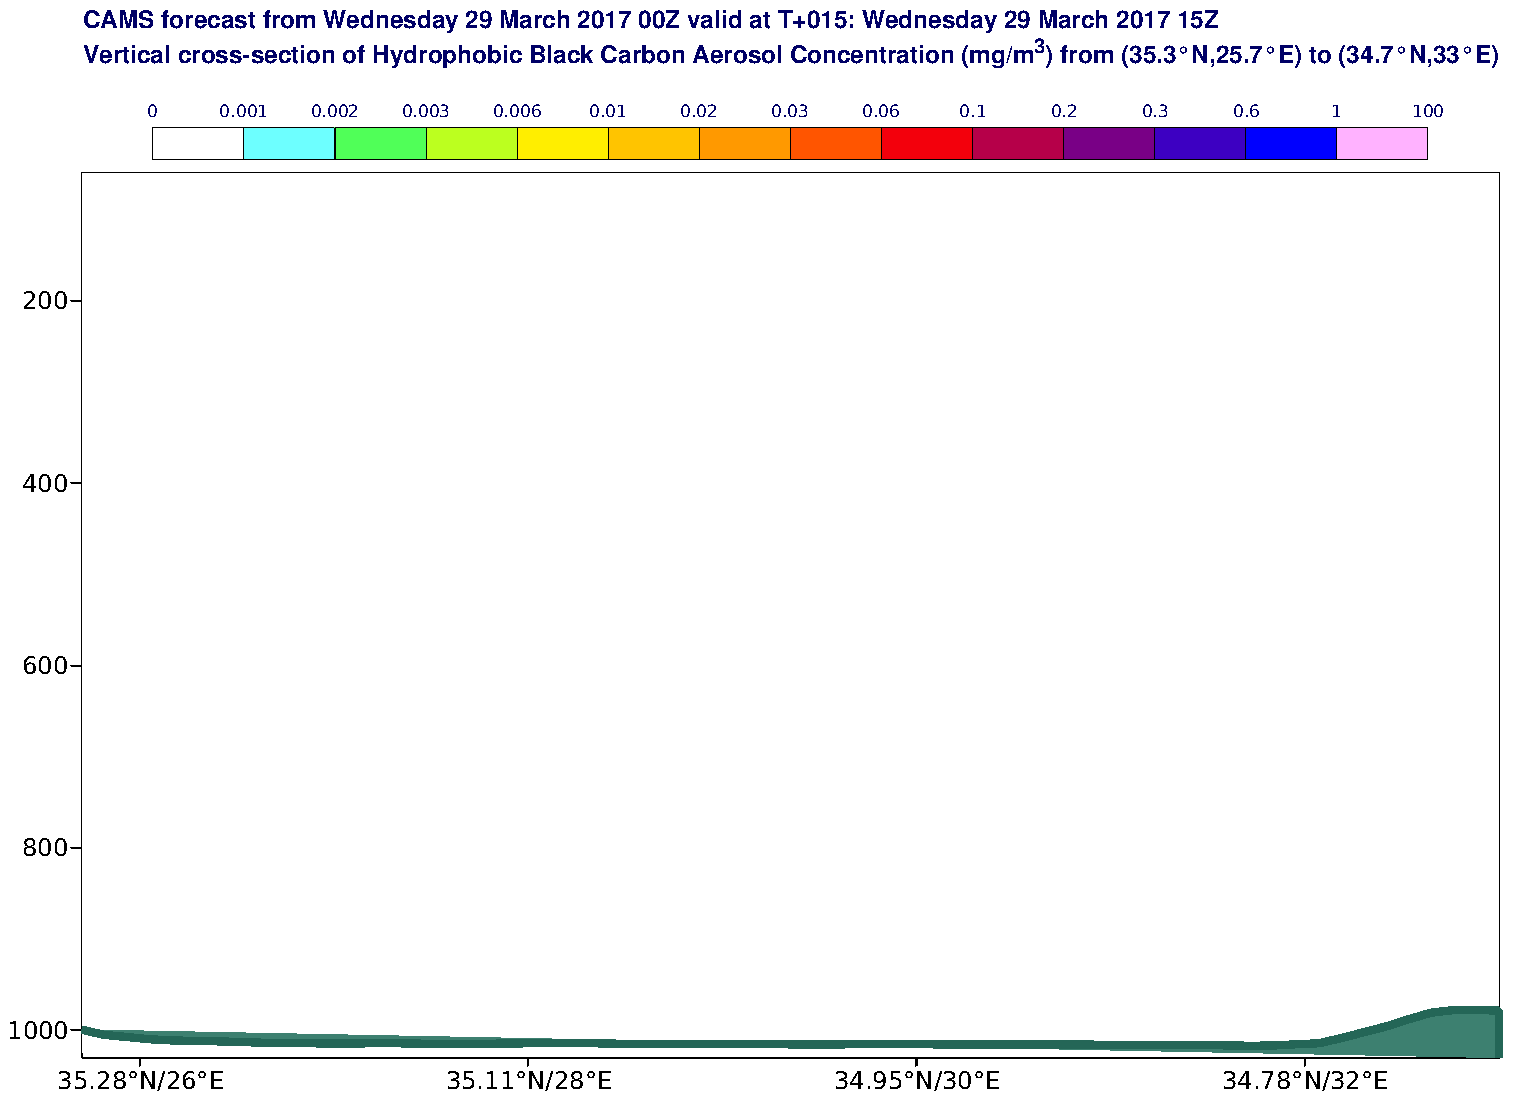 Vertical cross-section of Hydrophobic Black Carbon Aerosol Concentration (mg/m3) valid at T15 - 2017-03-29 15:00